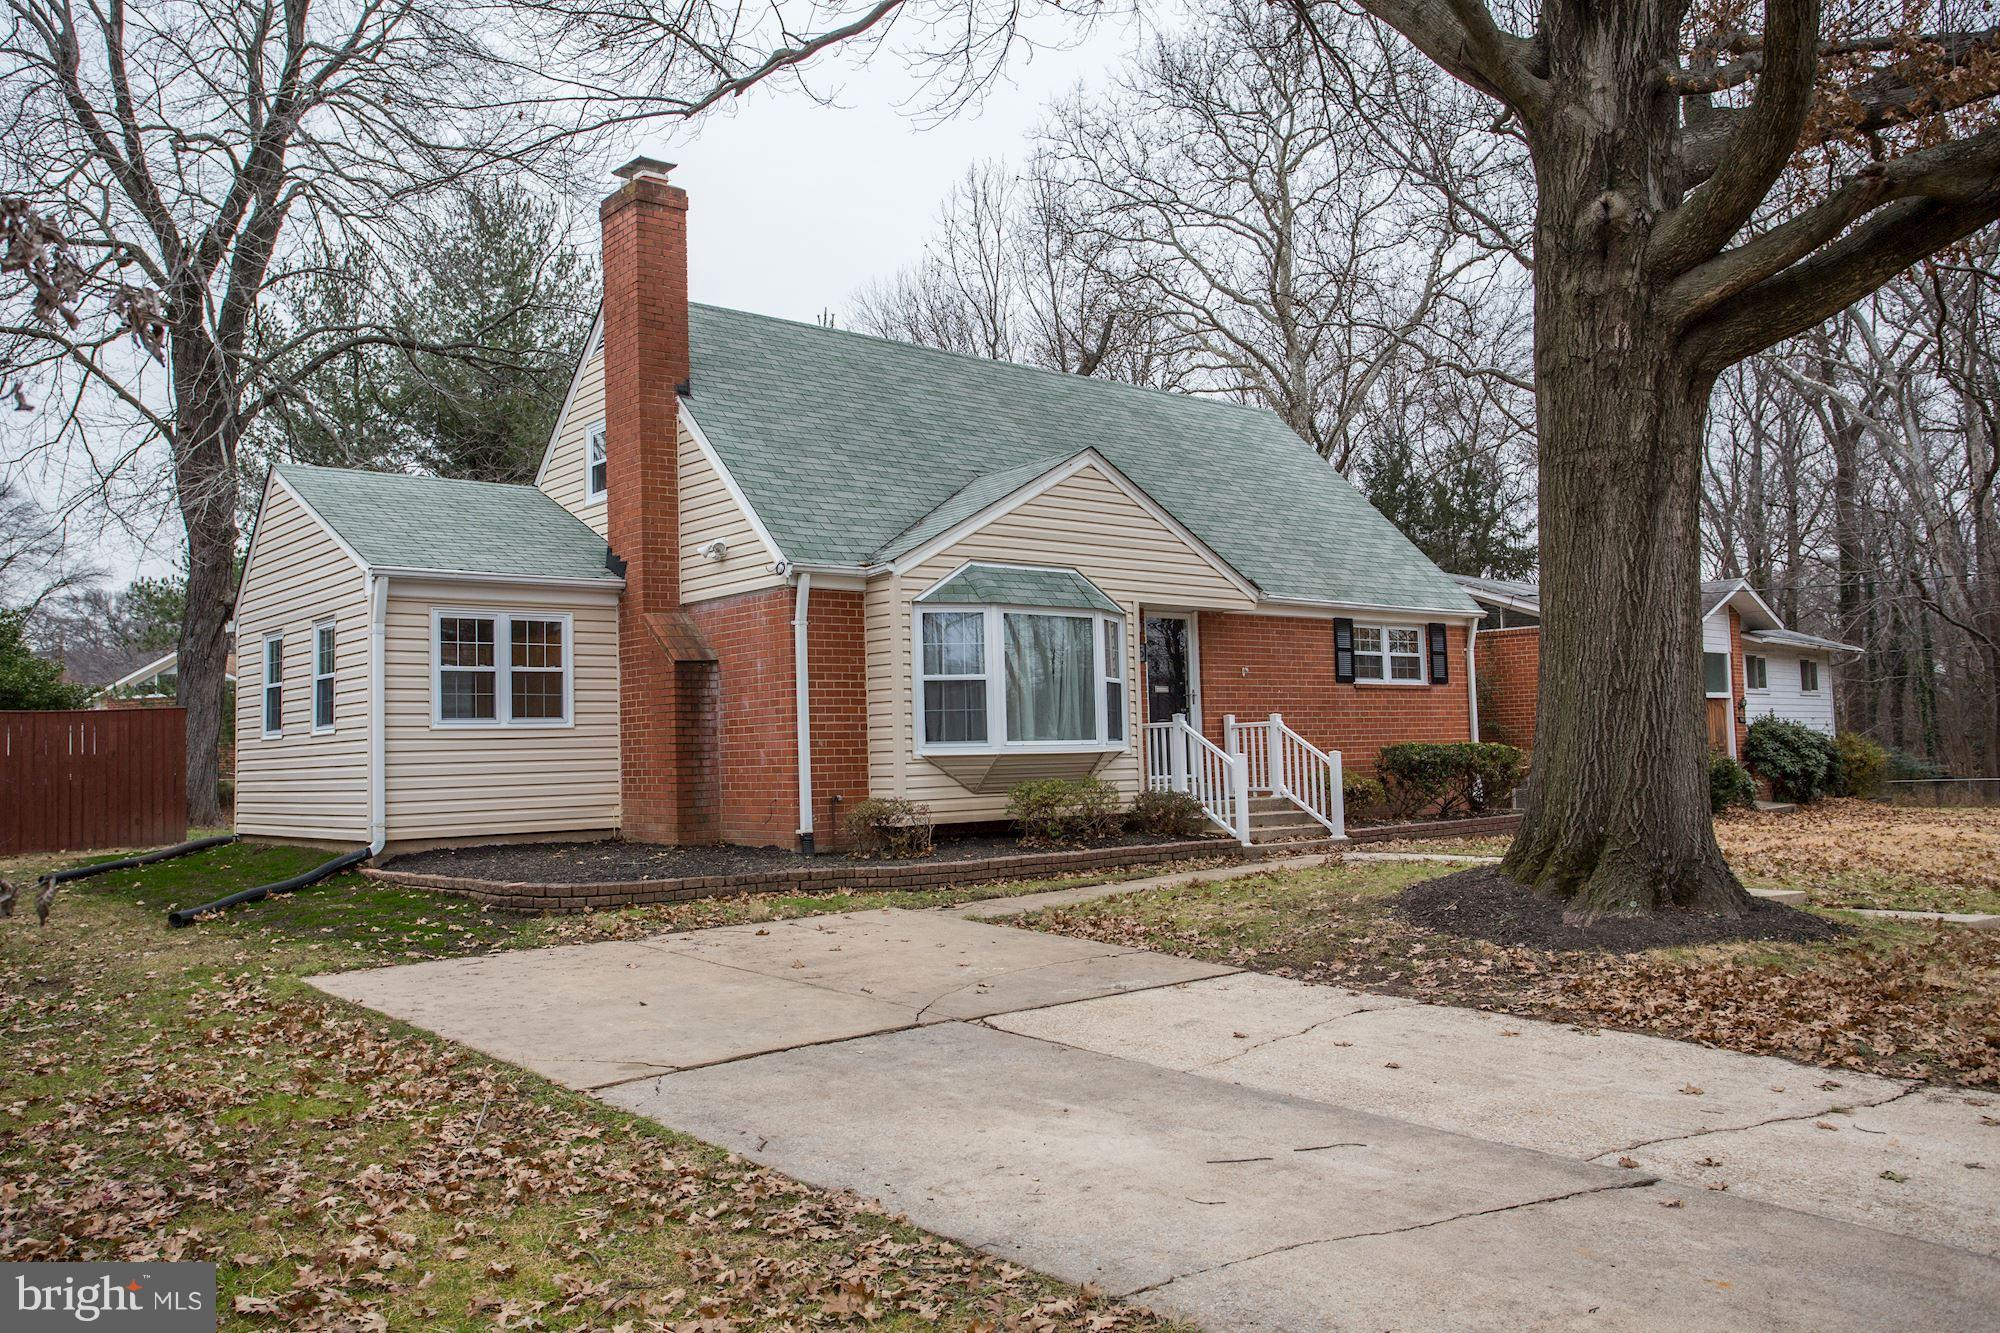 Largest 4BR 2BA Cape Cod in sought-after Seminary Valley! Refinished oak hardwoods, new bathroom vanities, updated windows, fixtures and finishes. Main level boasts a light and bright LR with wood-burning fireplace, bonus family room, 2 bedrooms w/ bath and huge 17 x 11 eat-in kitchen. 2 more bedrooms w/ bath on upper level and tremendous walk out basement ready for your customization! Spacious level lot, deck and driveway parking. Next to park/bike trail and just minutes to shops, schools and major transportation.